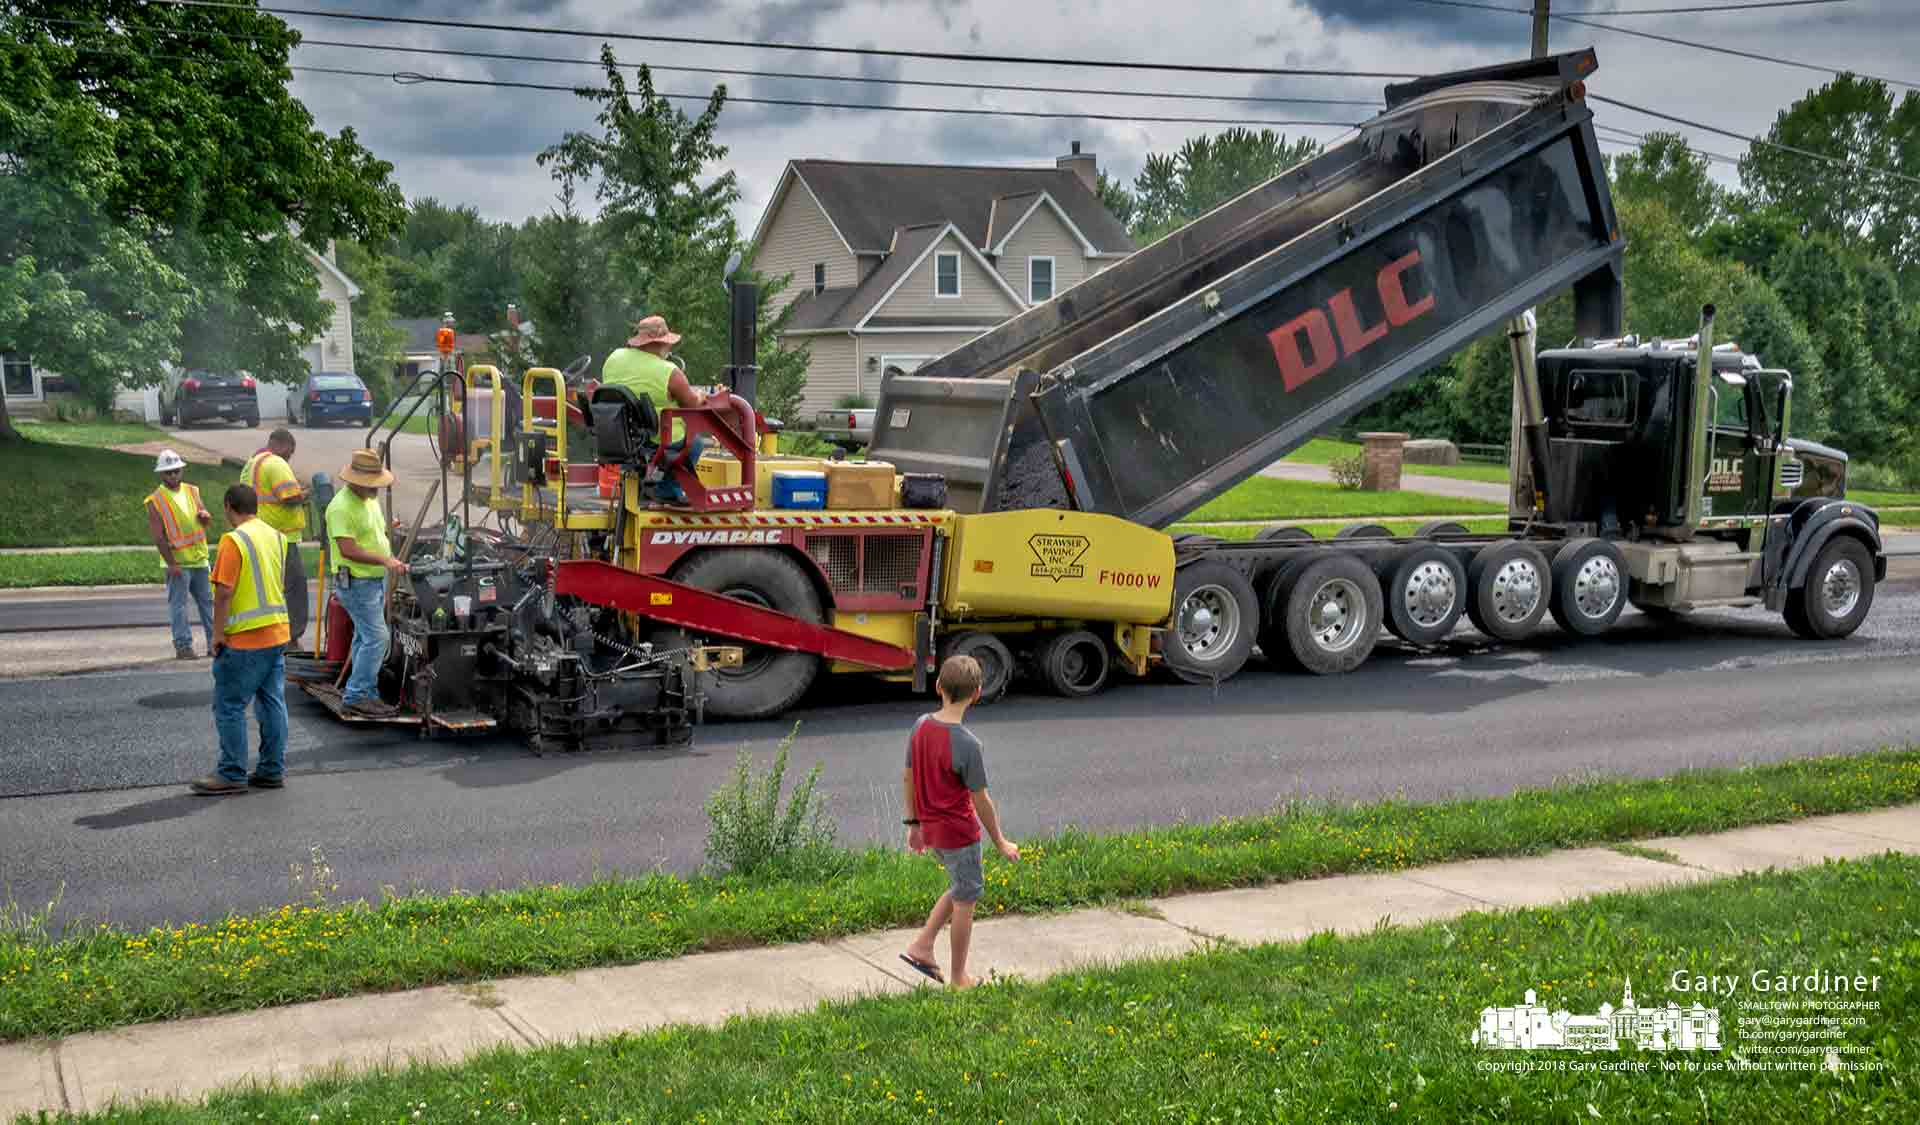 A young boy runs ahead of his family to get a closer look at a paver laying asphalt on County Line Road. My Final Photo for Aug. 2, 2018.